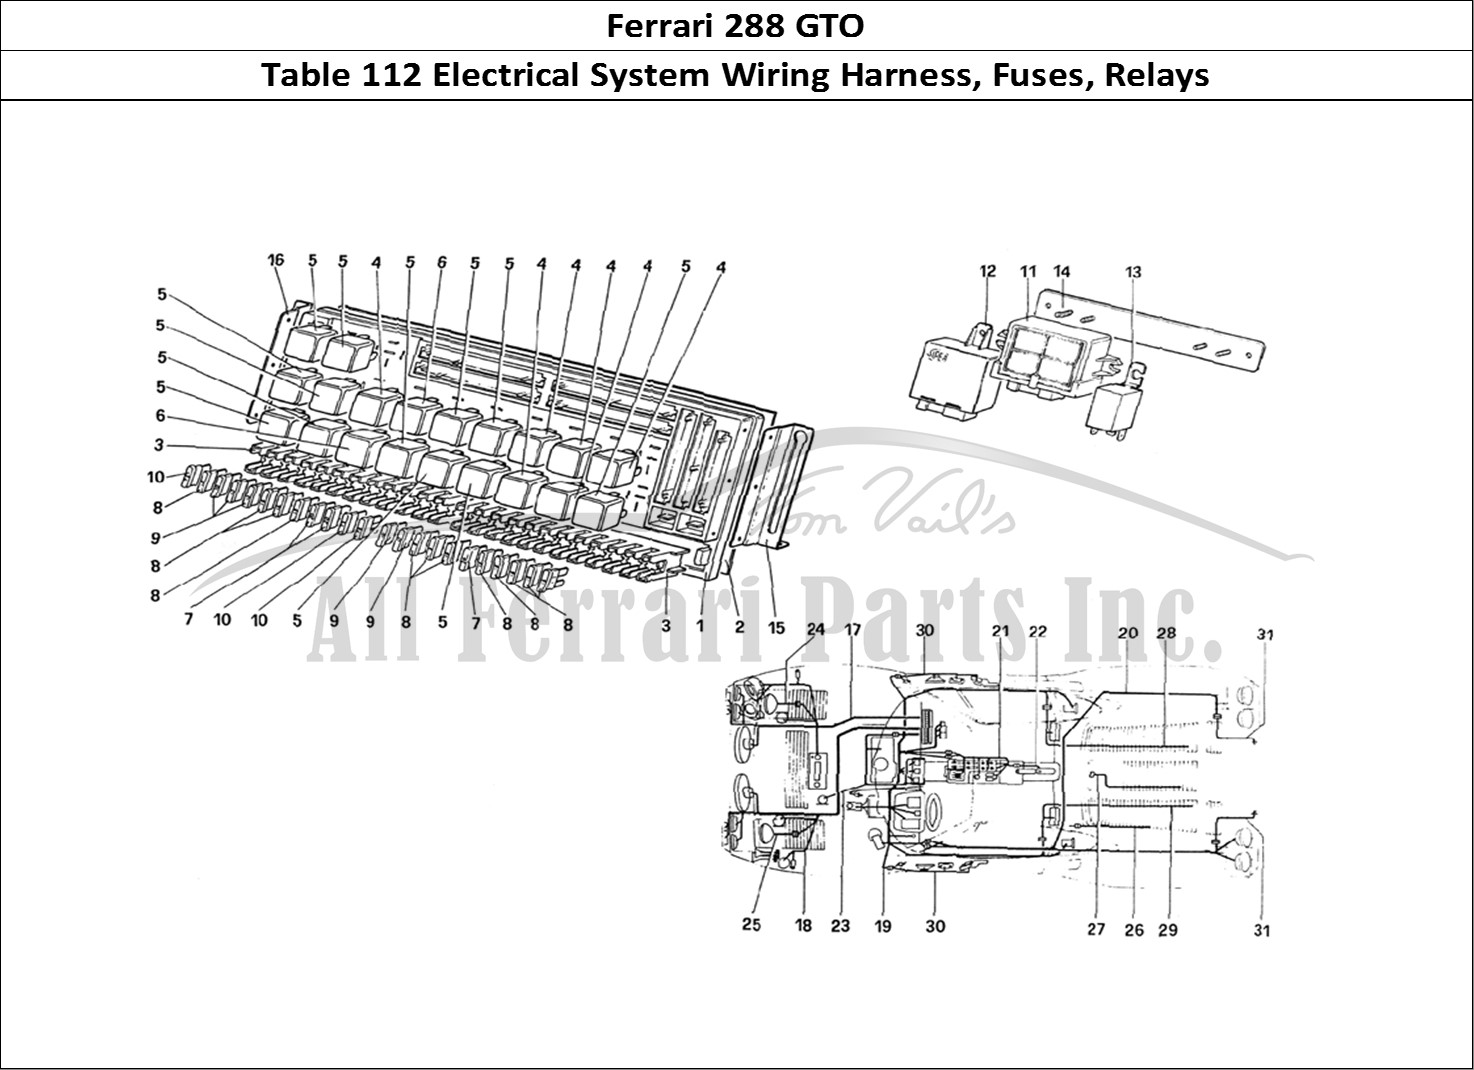 Buy original Ferrari 288 GTO 112 Electrical System Wiring